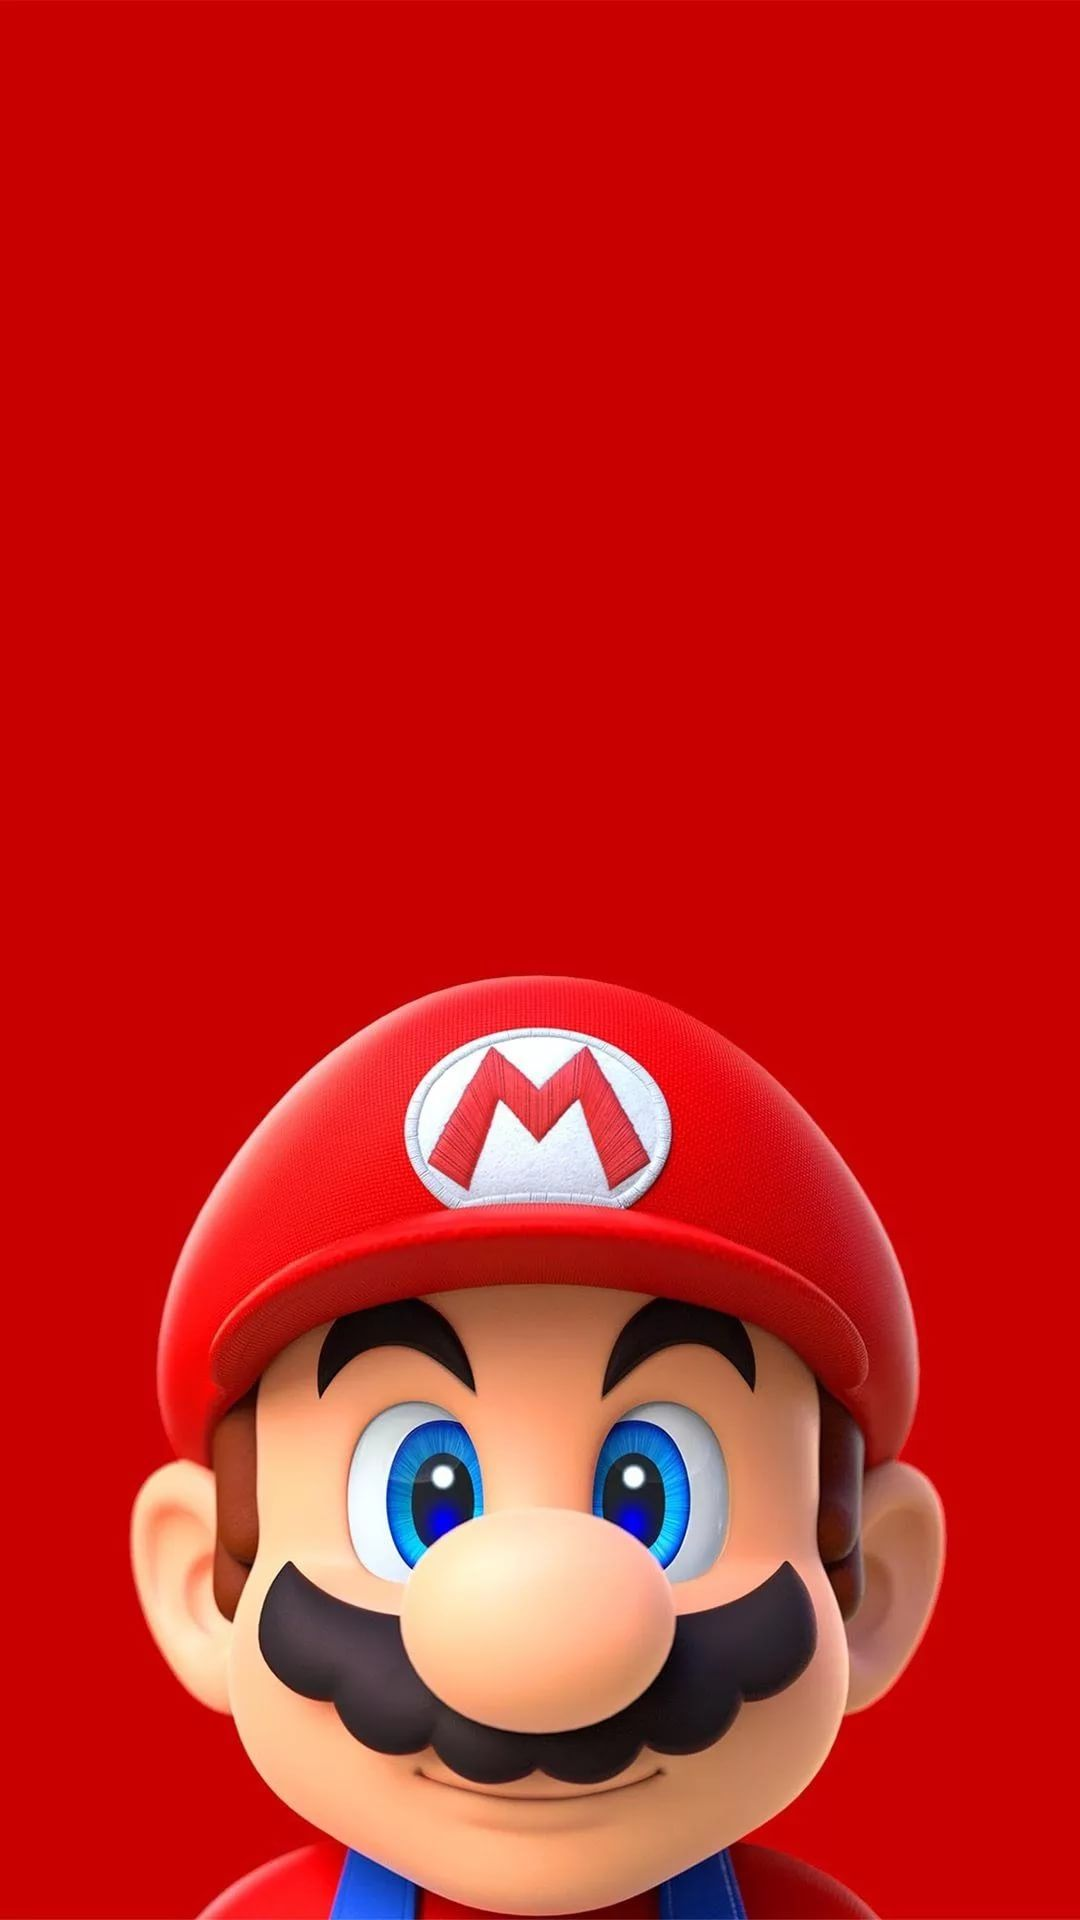 Mario phone background